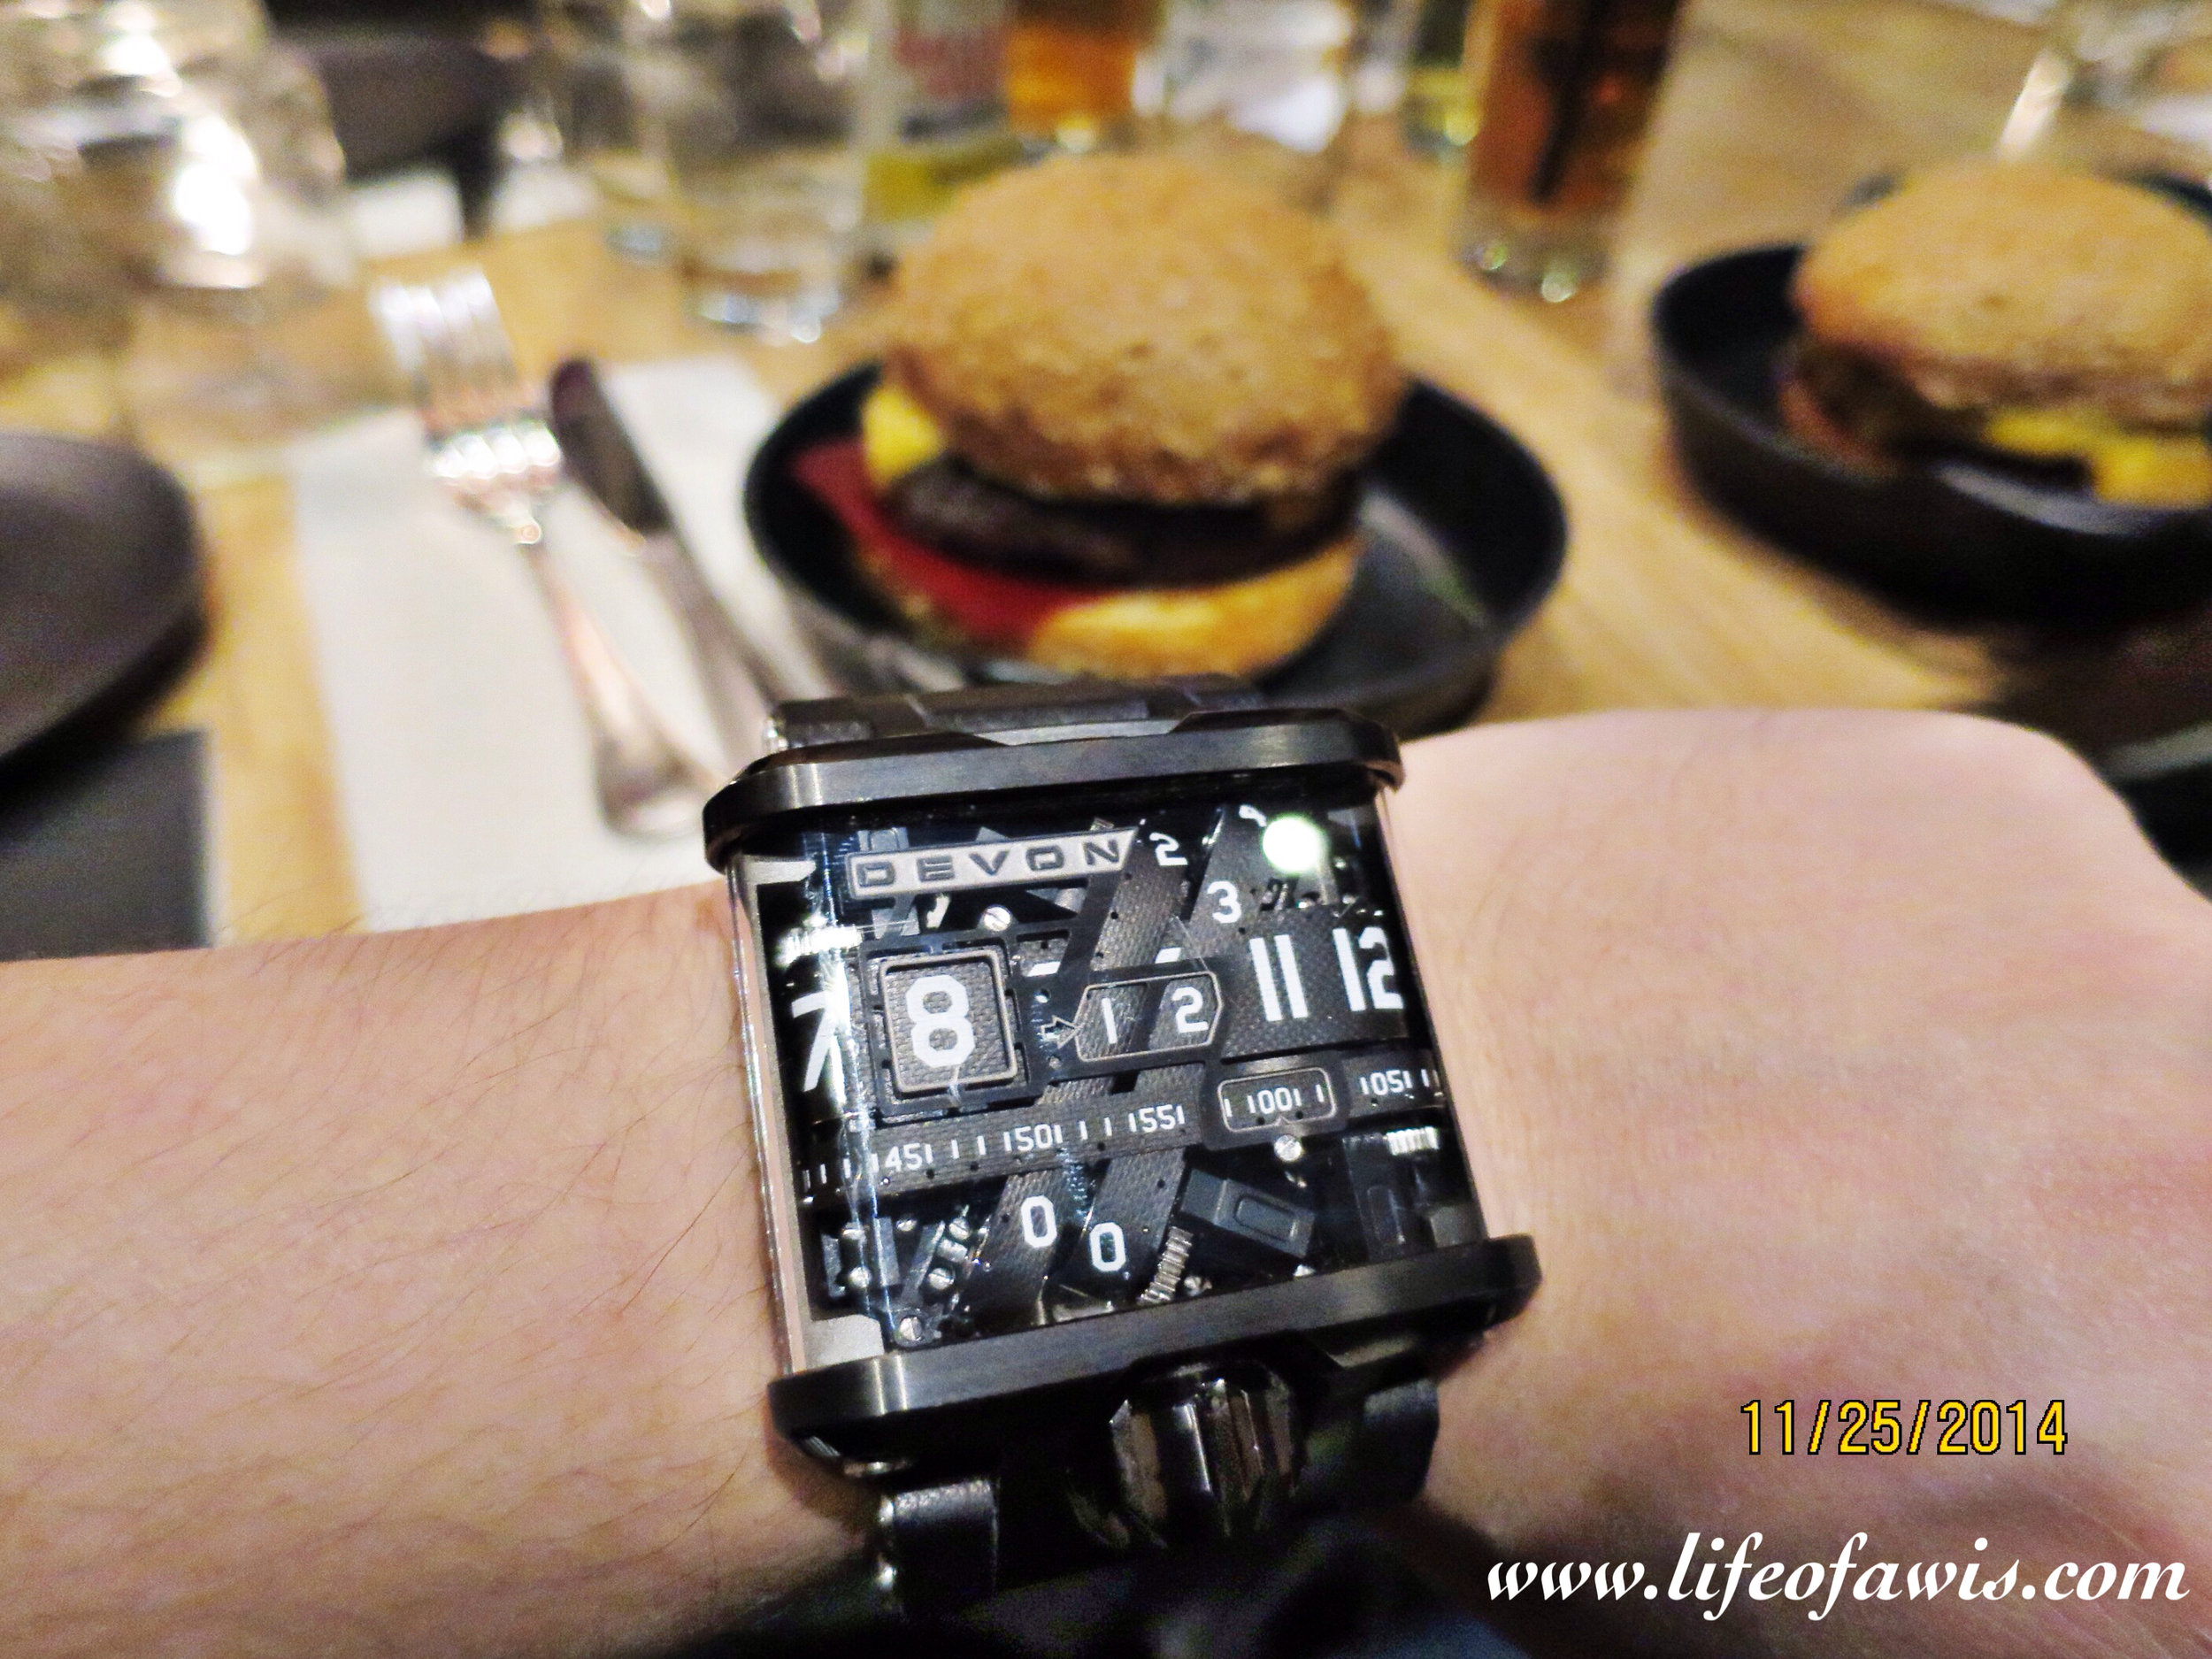 The Devon Works timepieces were awesome... and the burgers too!